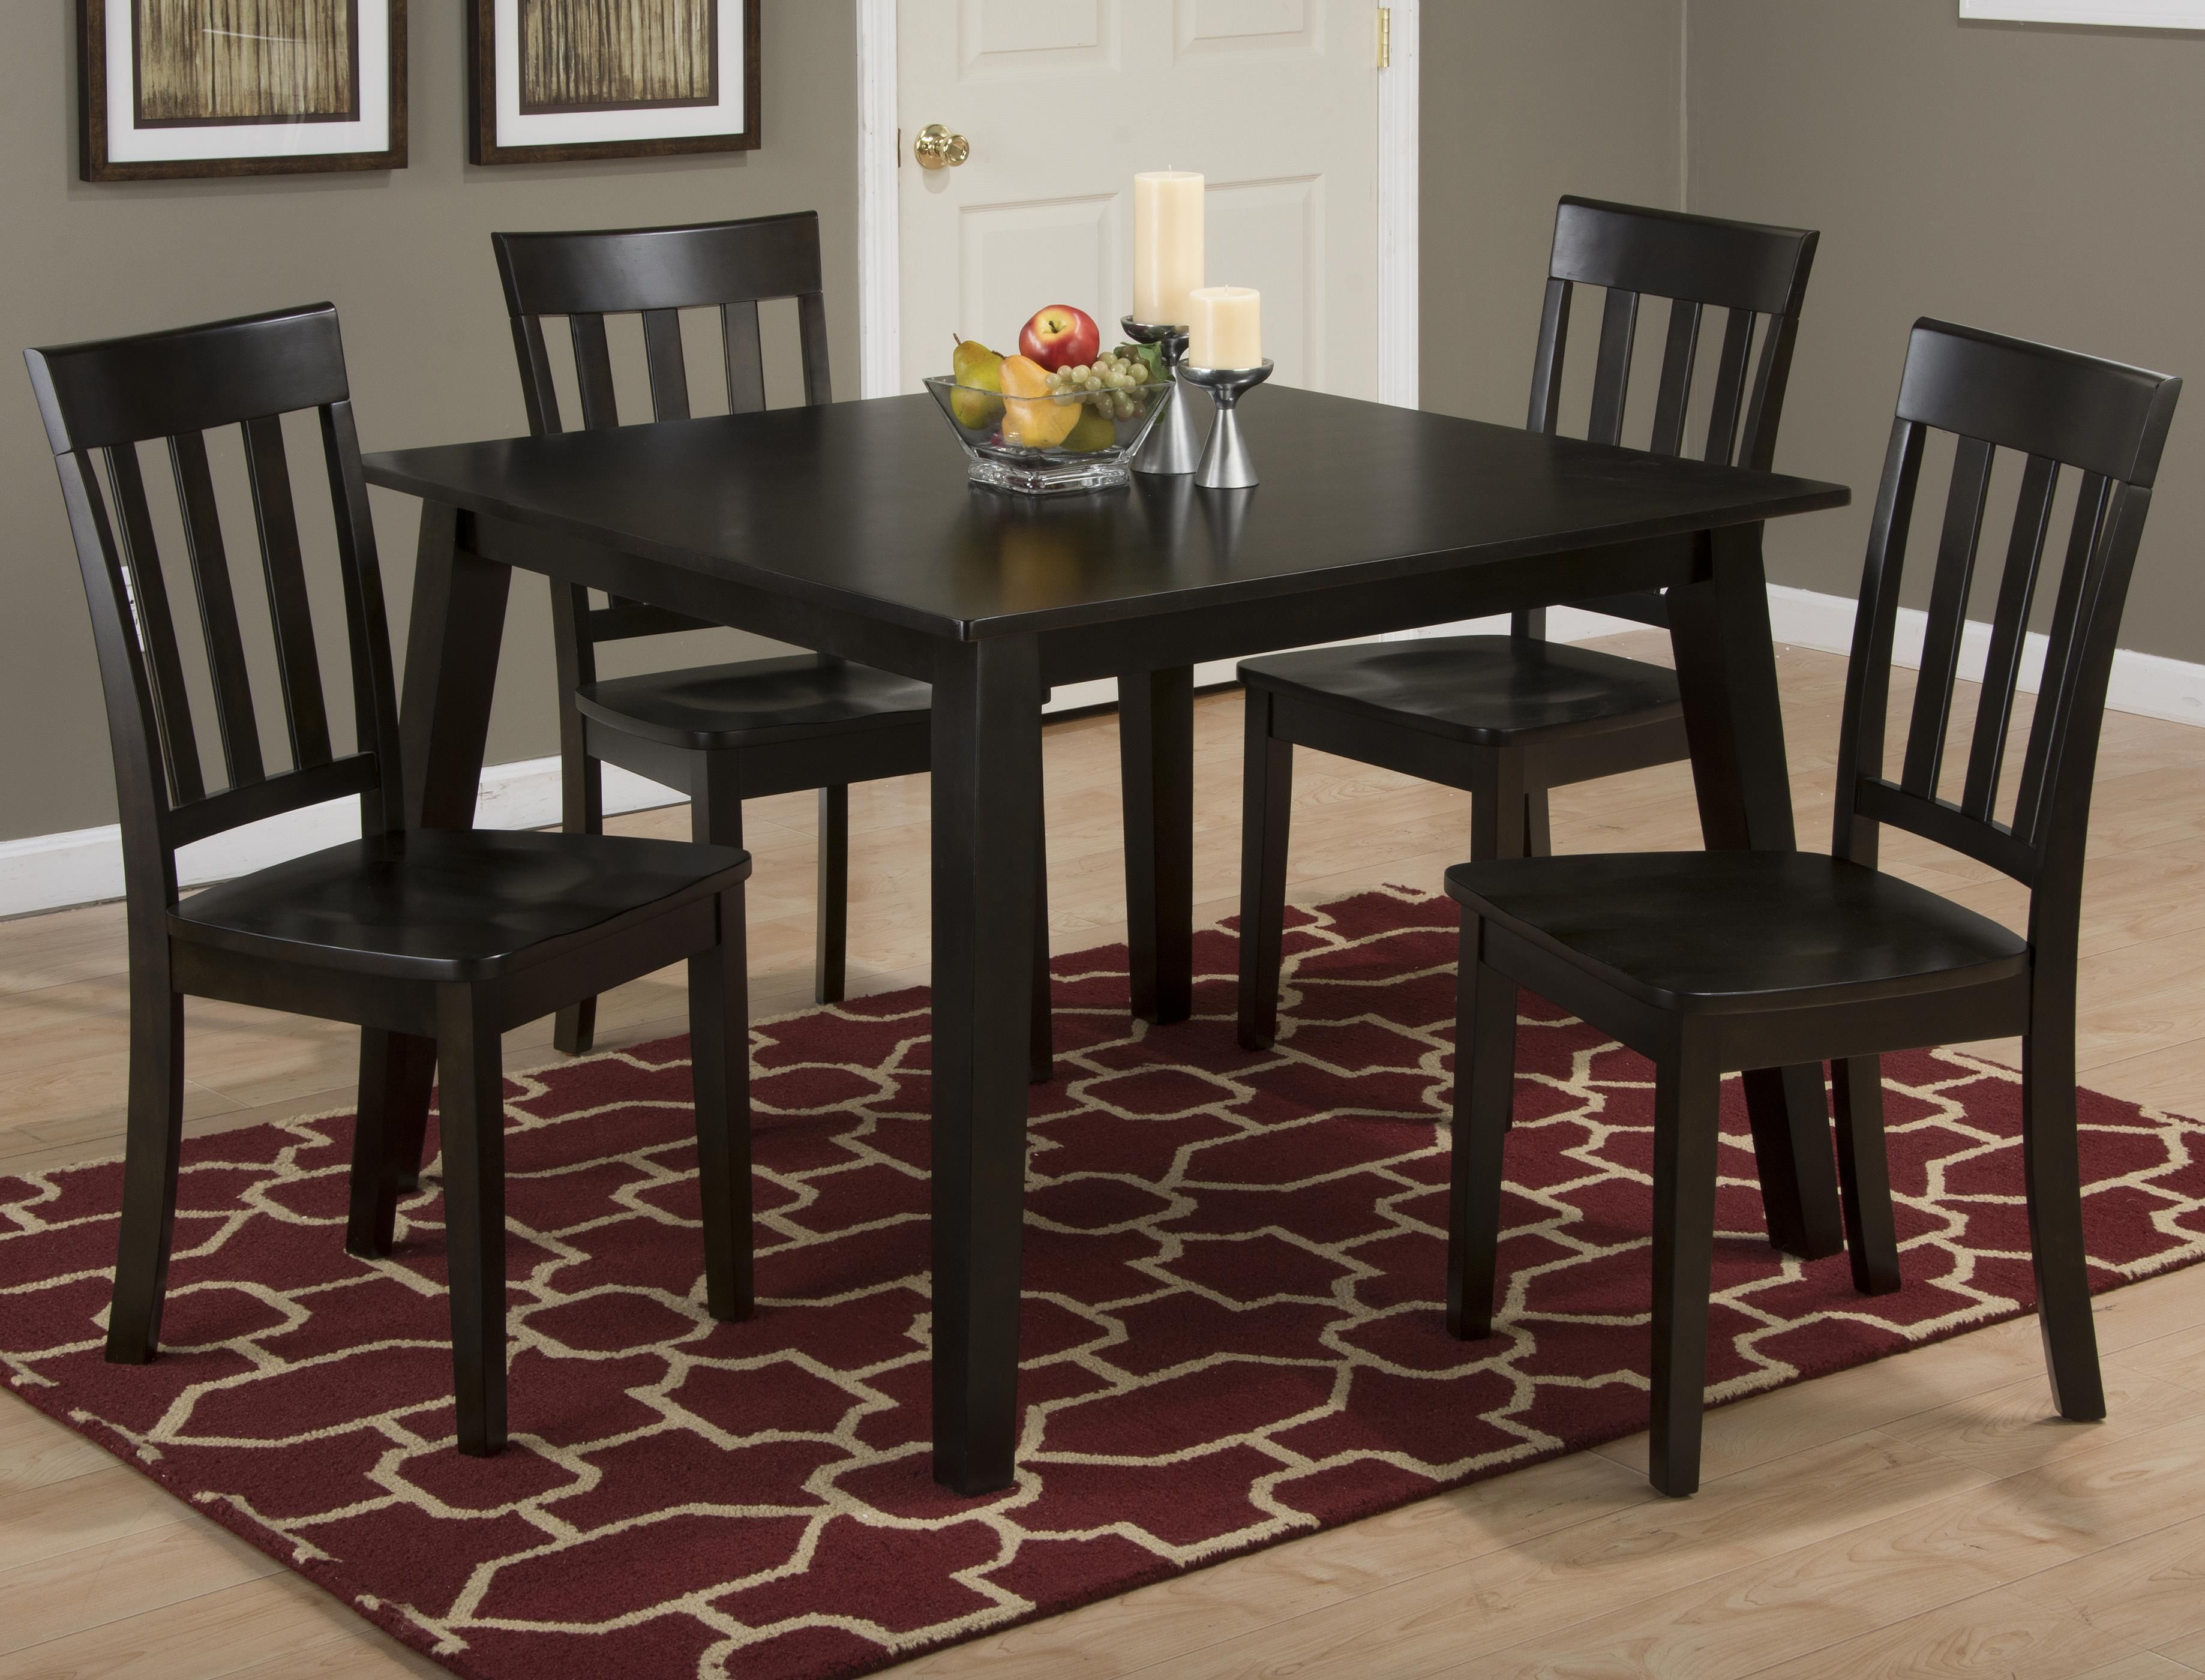 3x3x3 Espresso Square Table And 4 Chair Set By Jofran Square